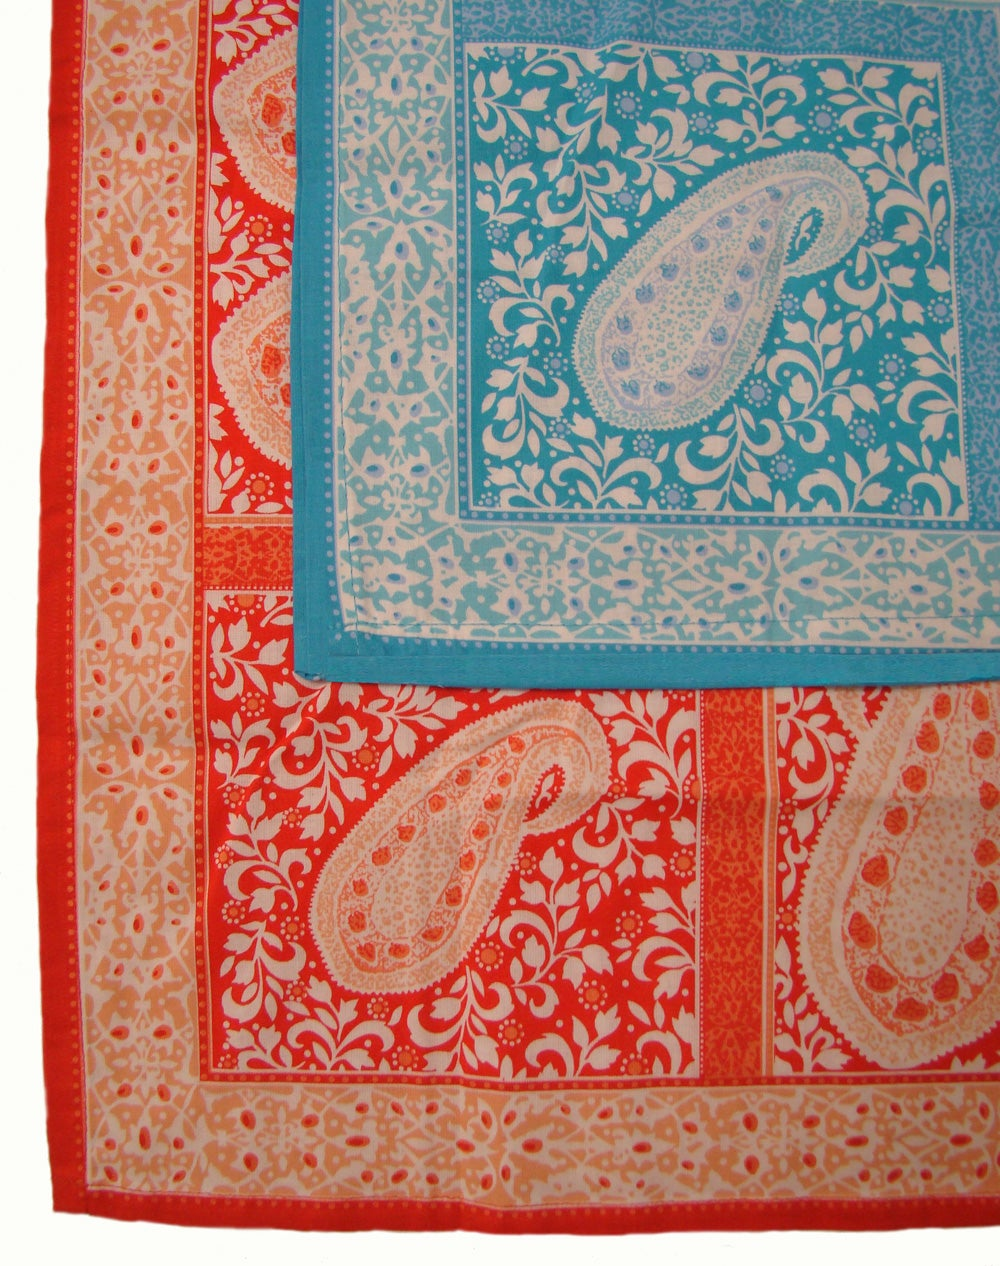 Global Paisley Tablecloth